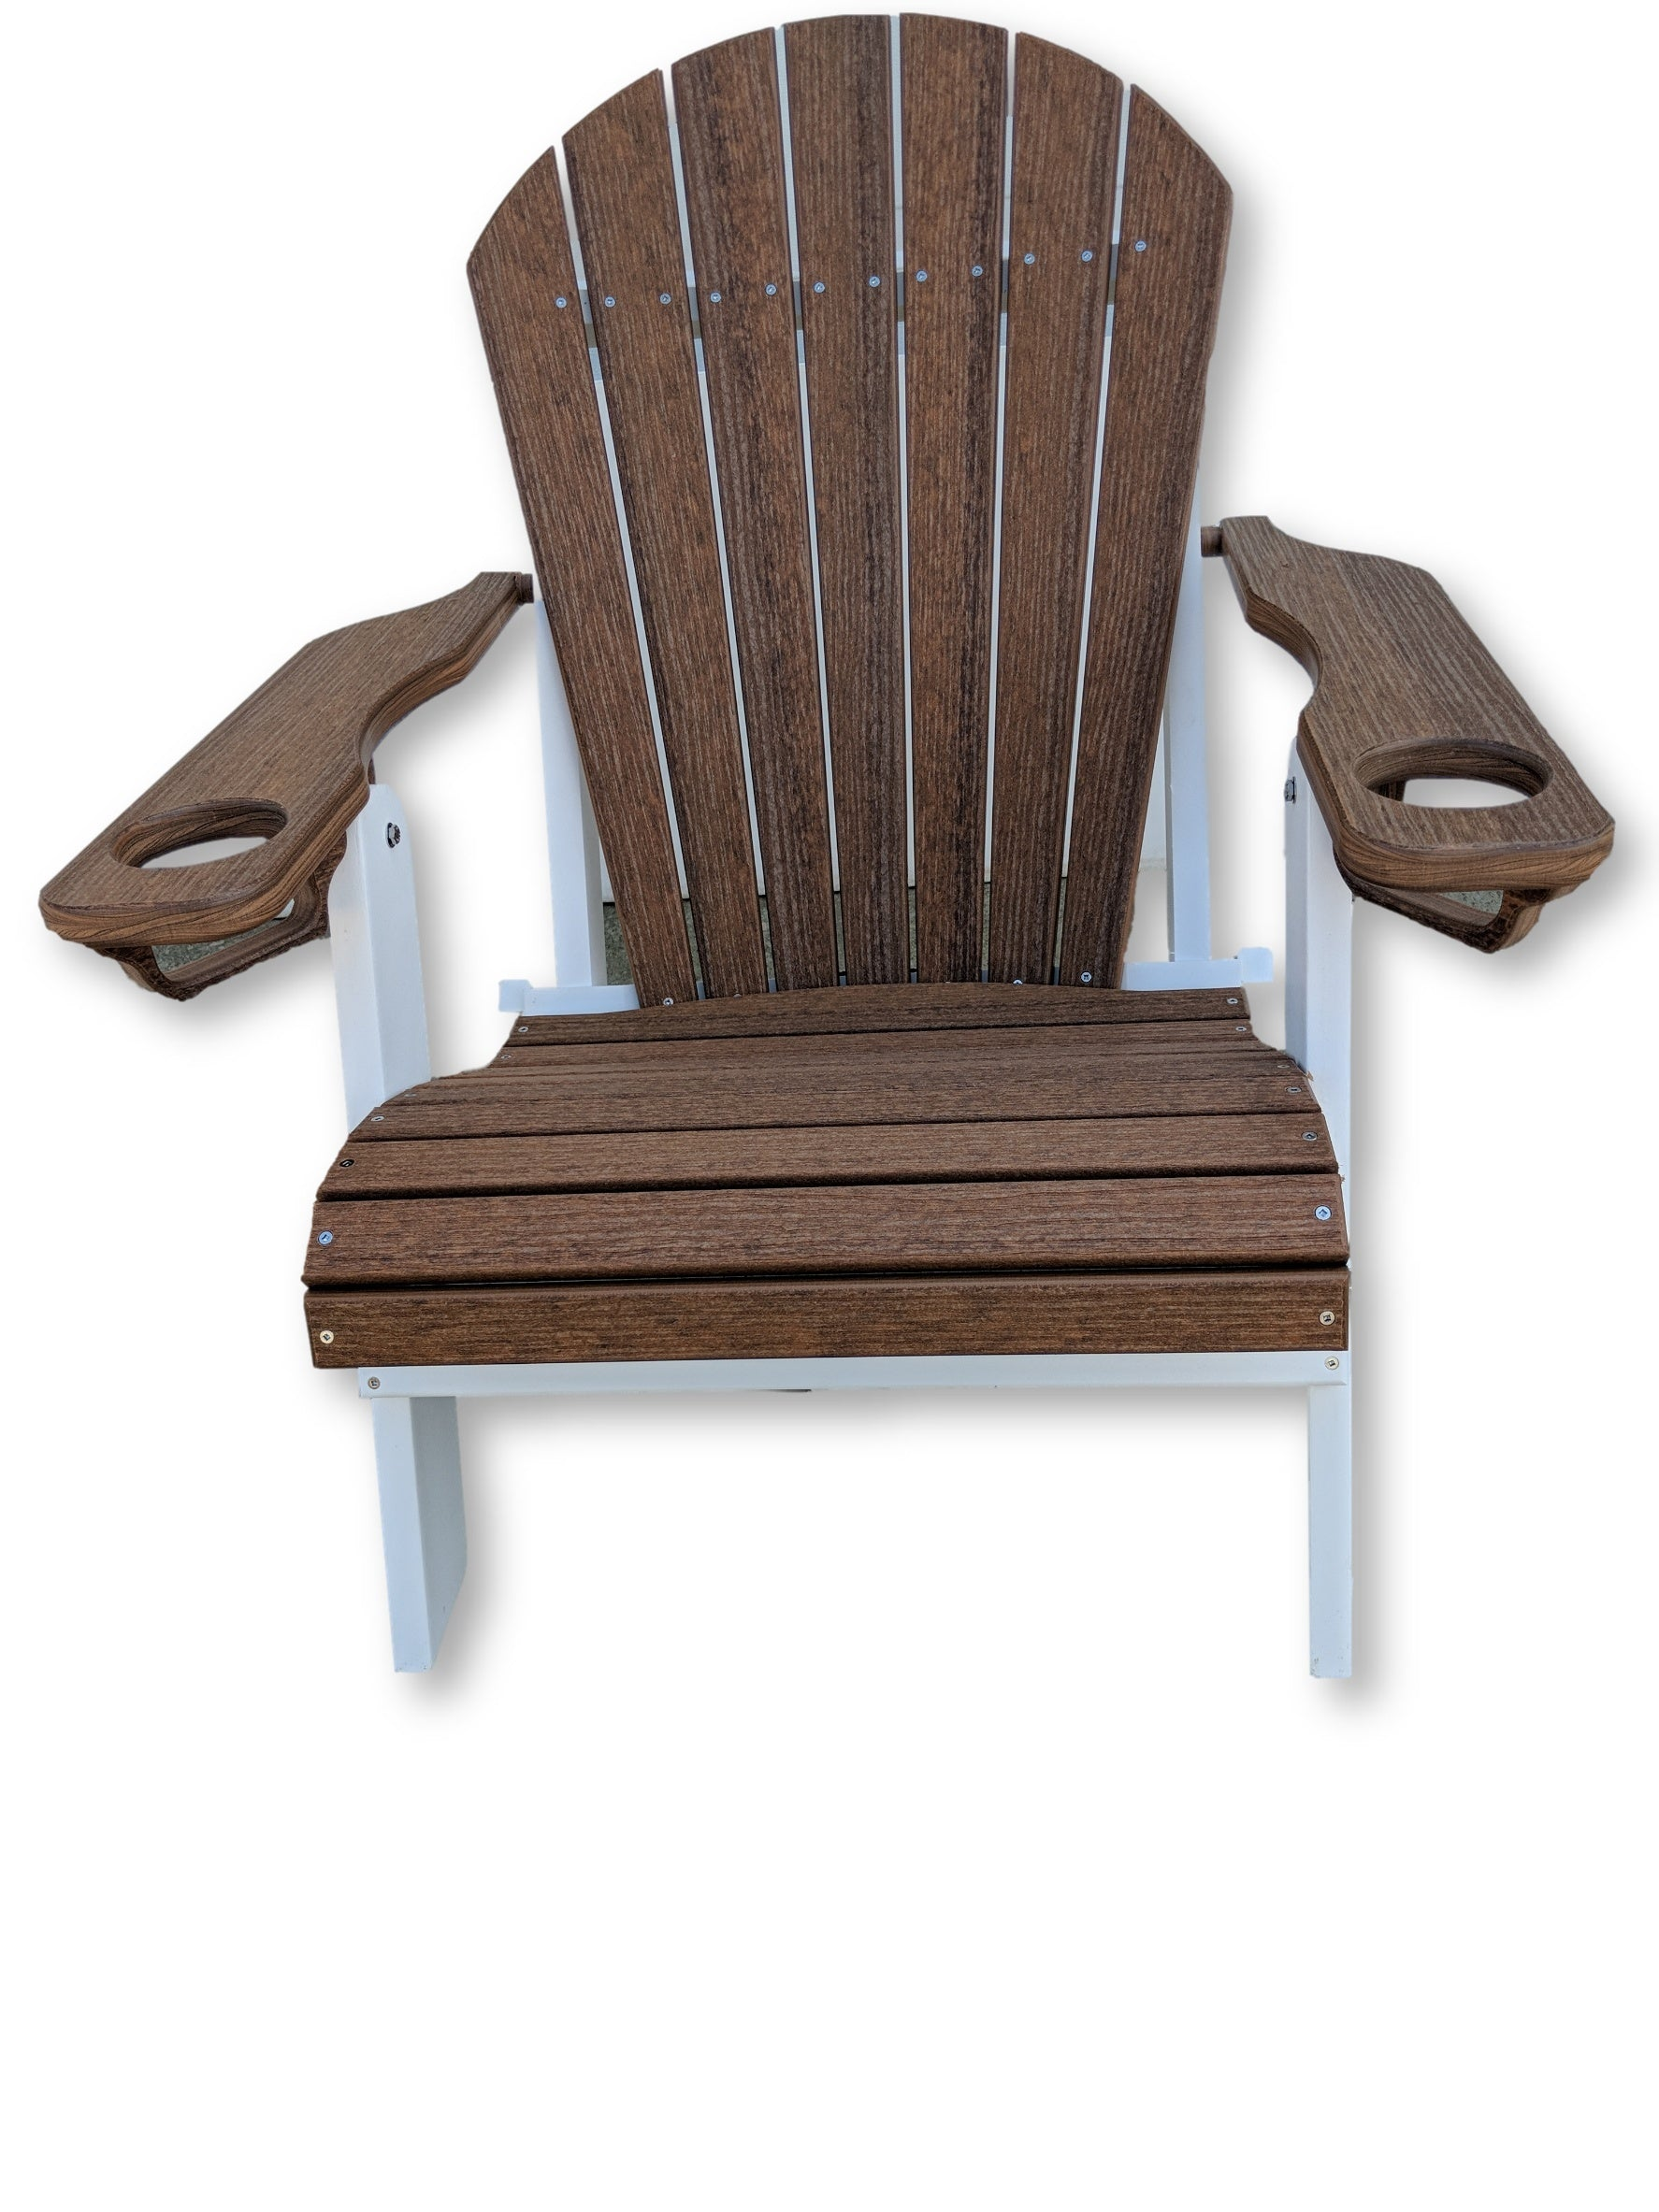 Antique Mahogany White Folding Adirondack Chair With Cup Holders